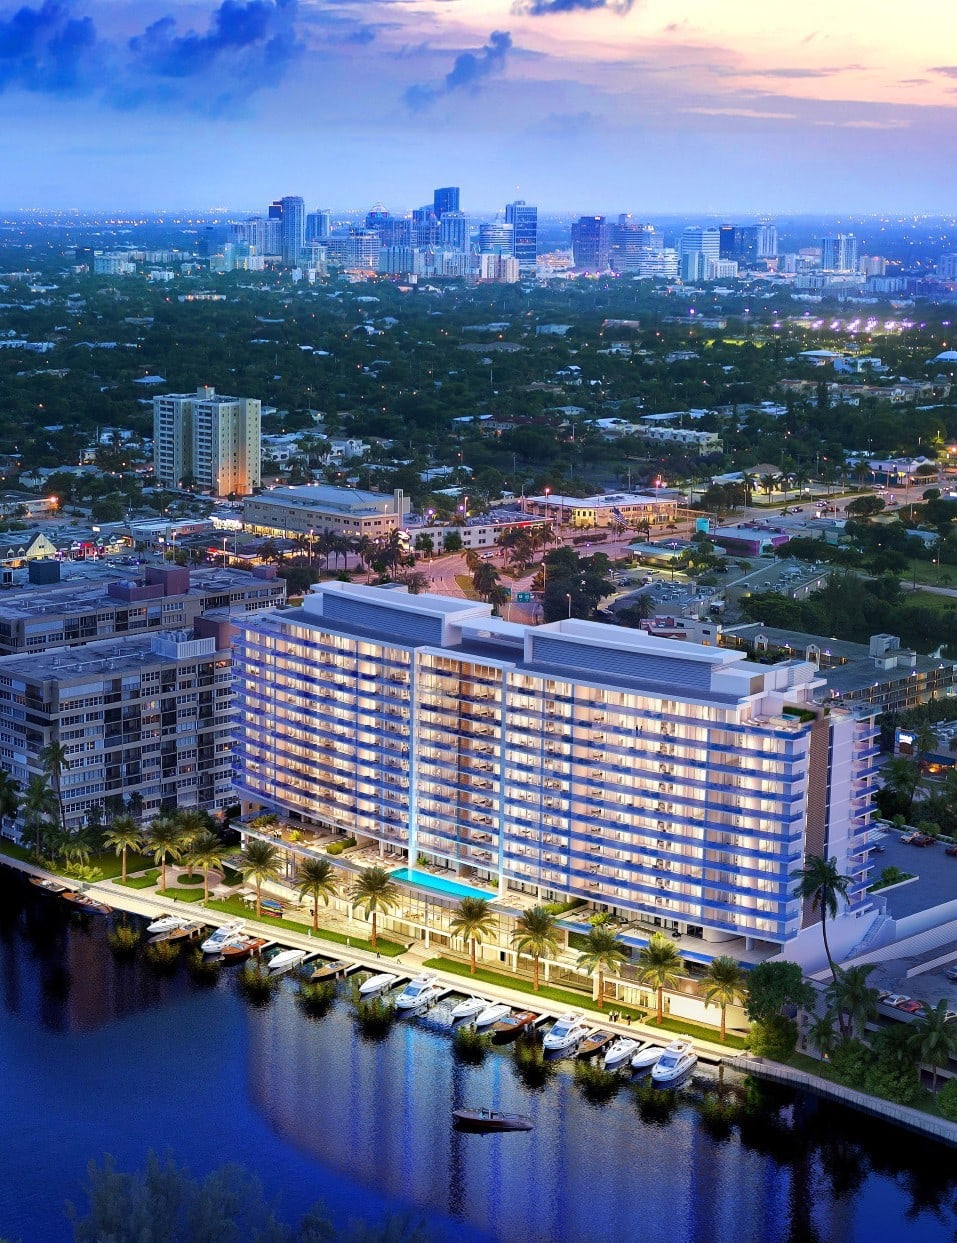 skyview image of Riva Fort Lauderdale